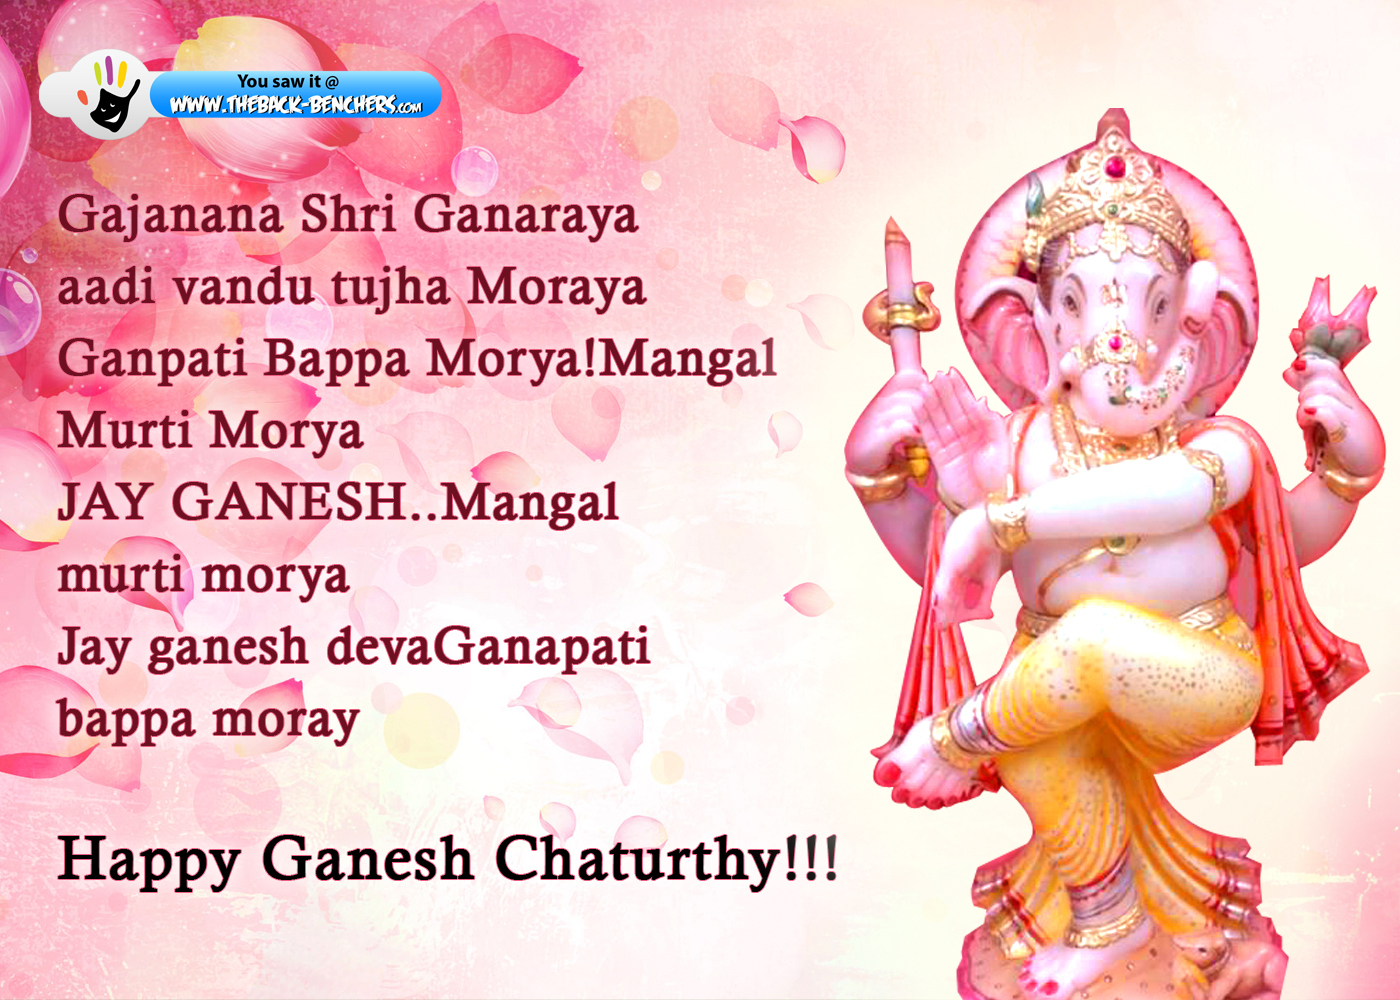 Ganesh Chaturthi 2012 Wallpapers Wishes Pics Ganesh Images